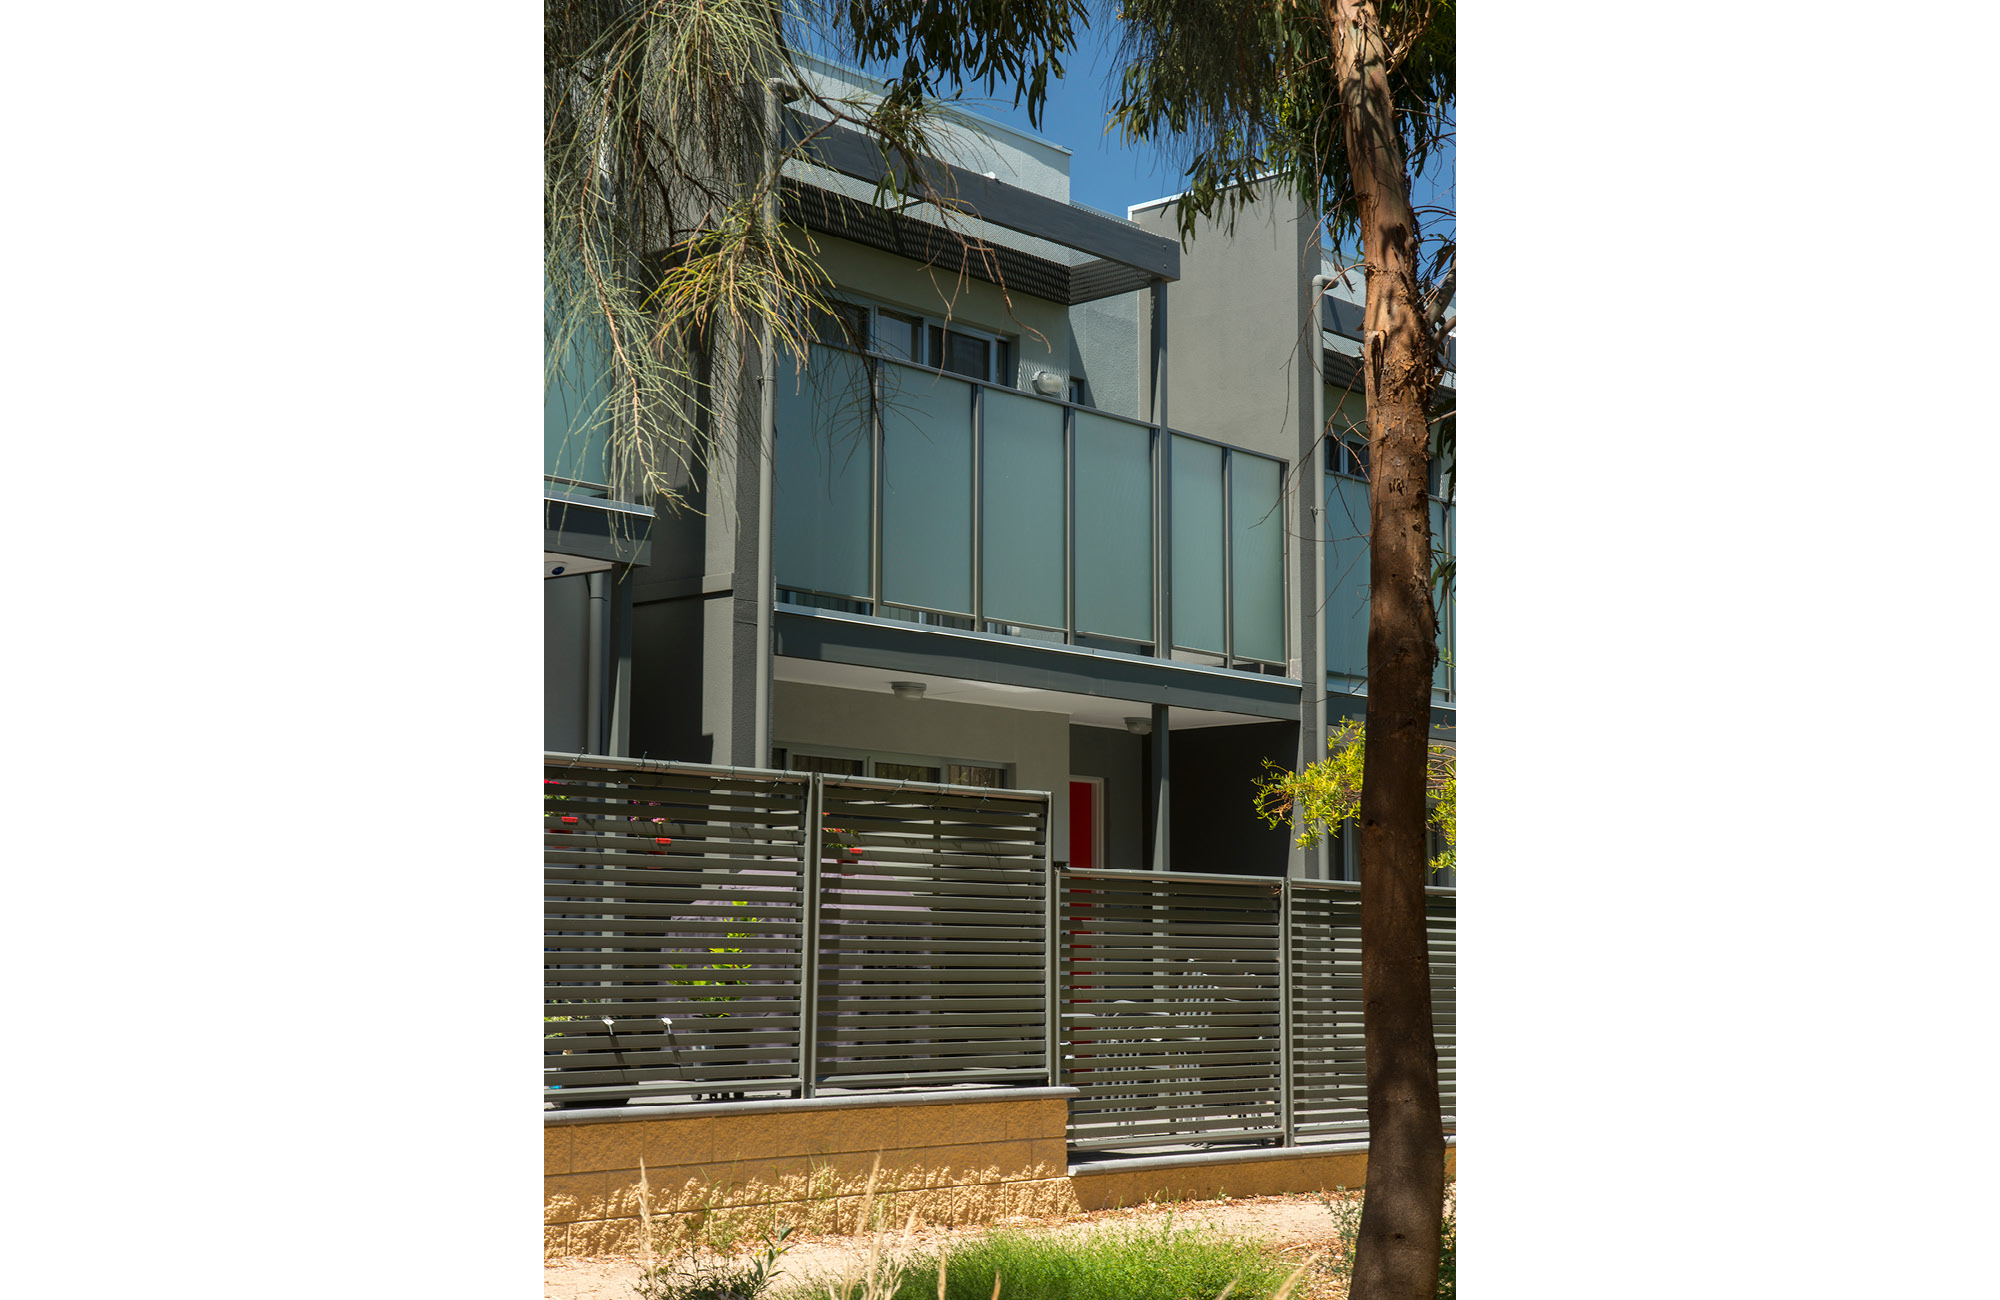 Cleland Avenue Unley Property Development Normus Urban Projects